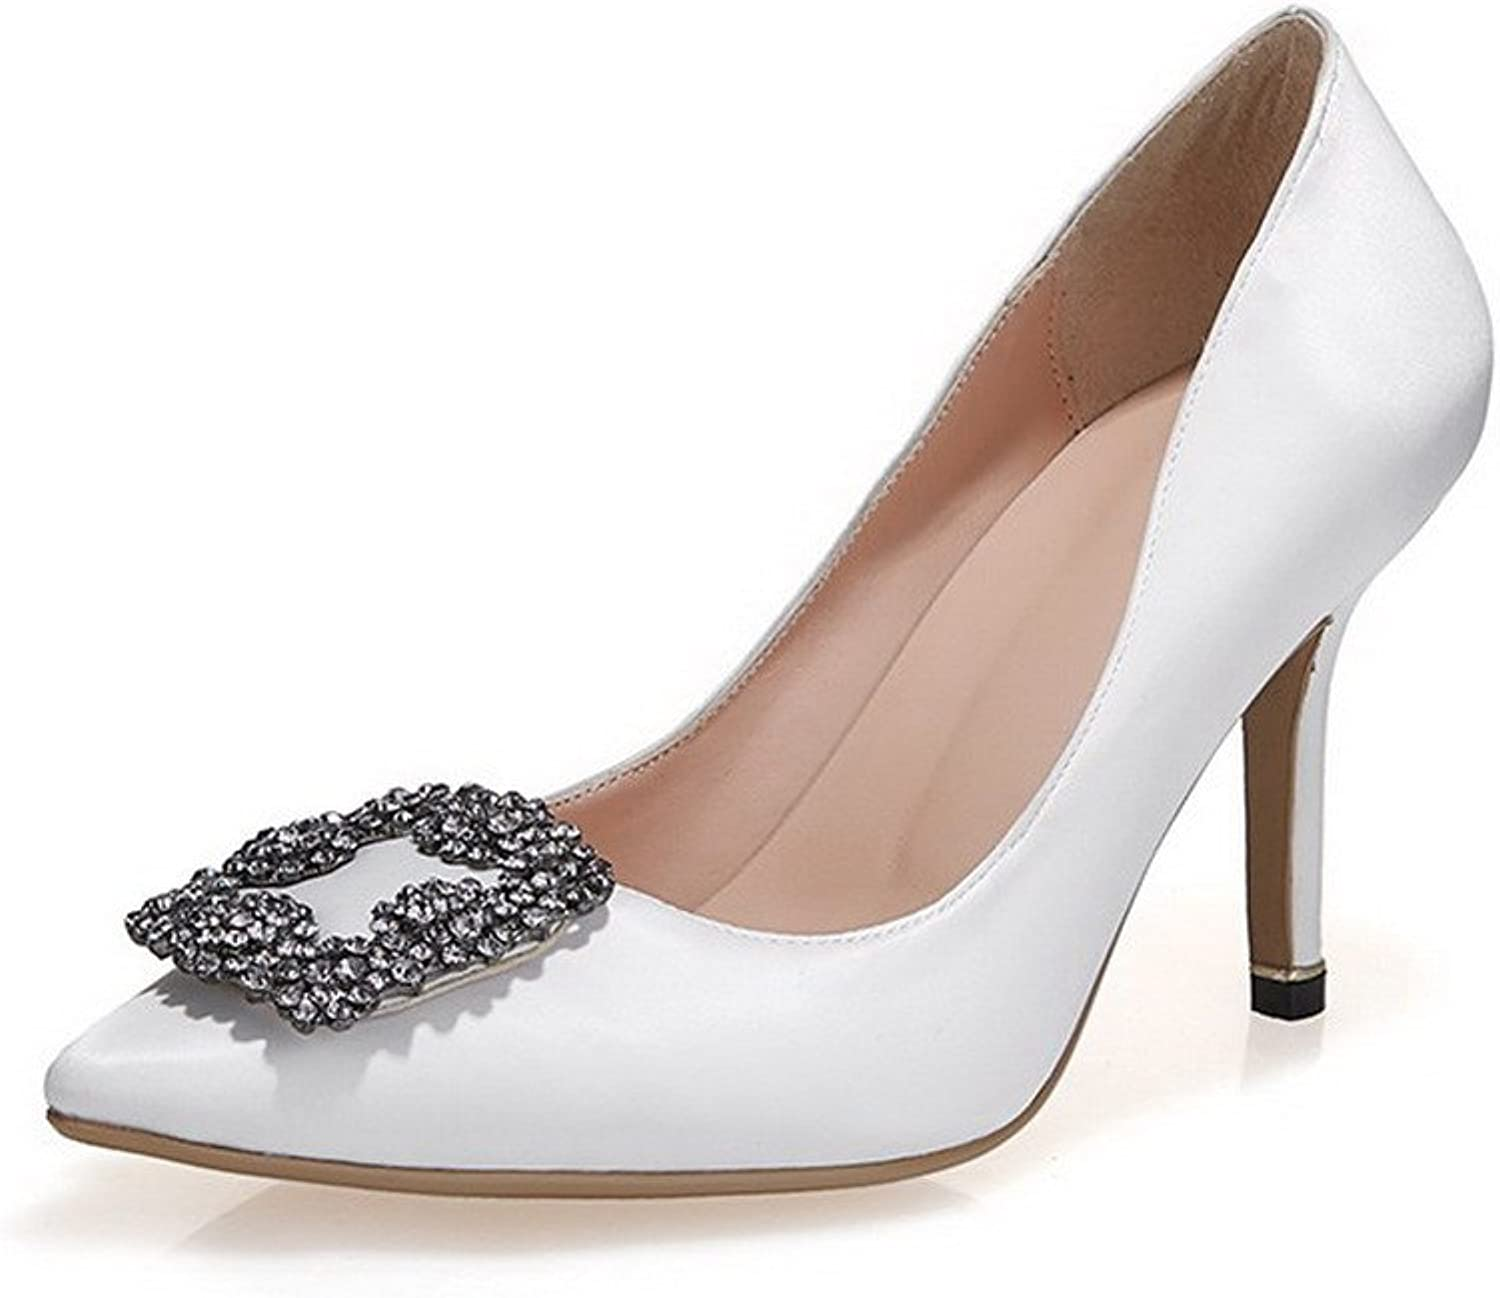 AmoonyFashion Women's Pull-On Pointed Closed Toe High Heels Solid Pumps-shoes